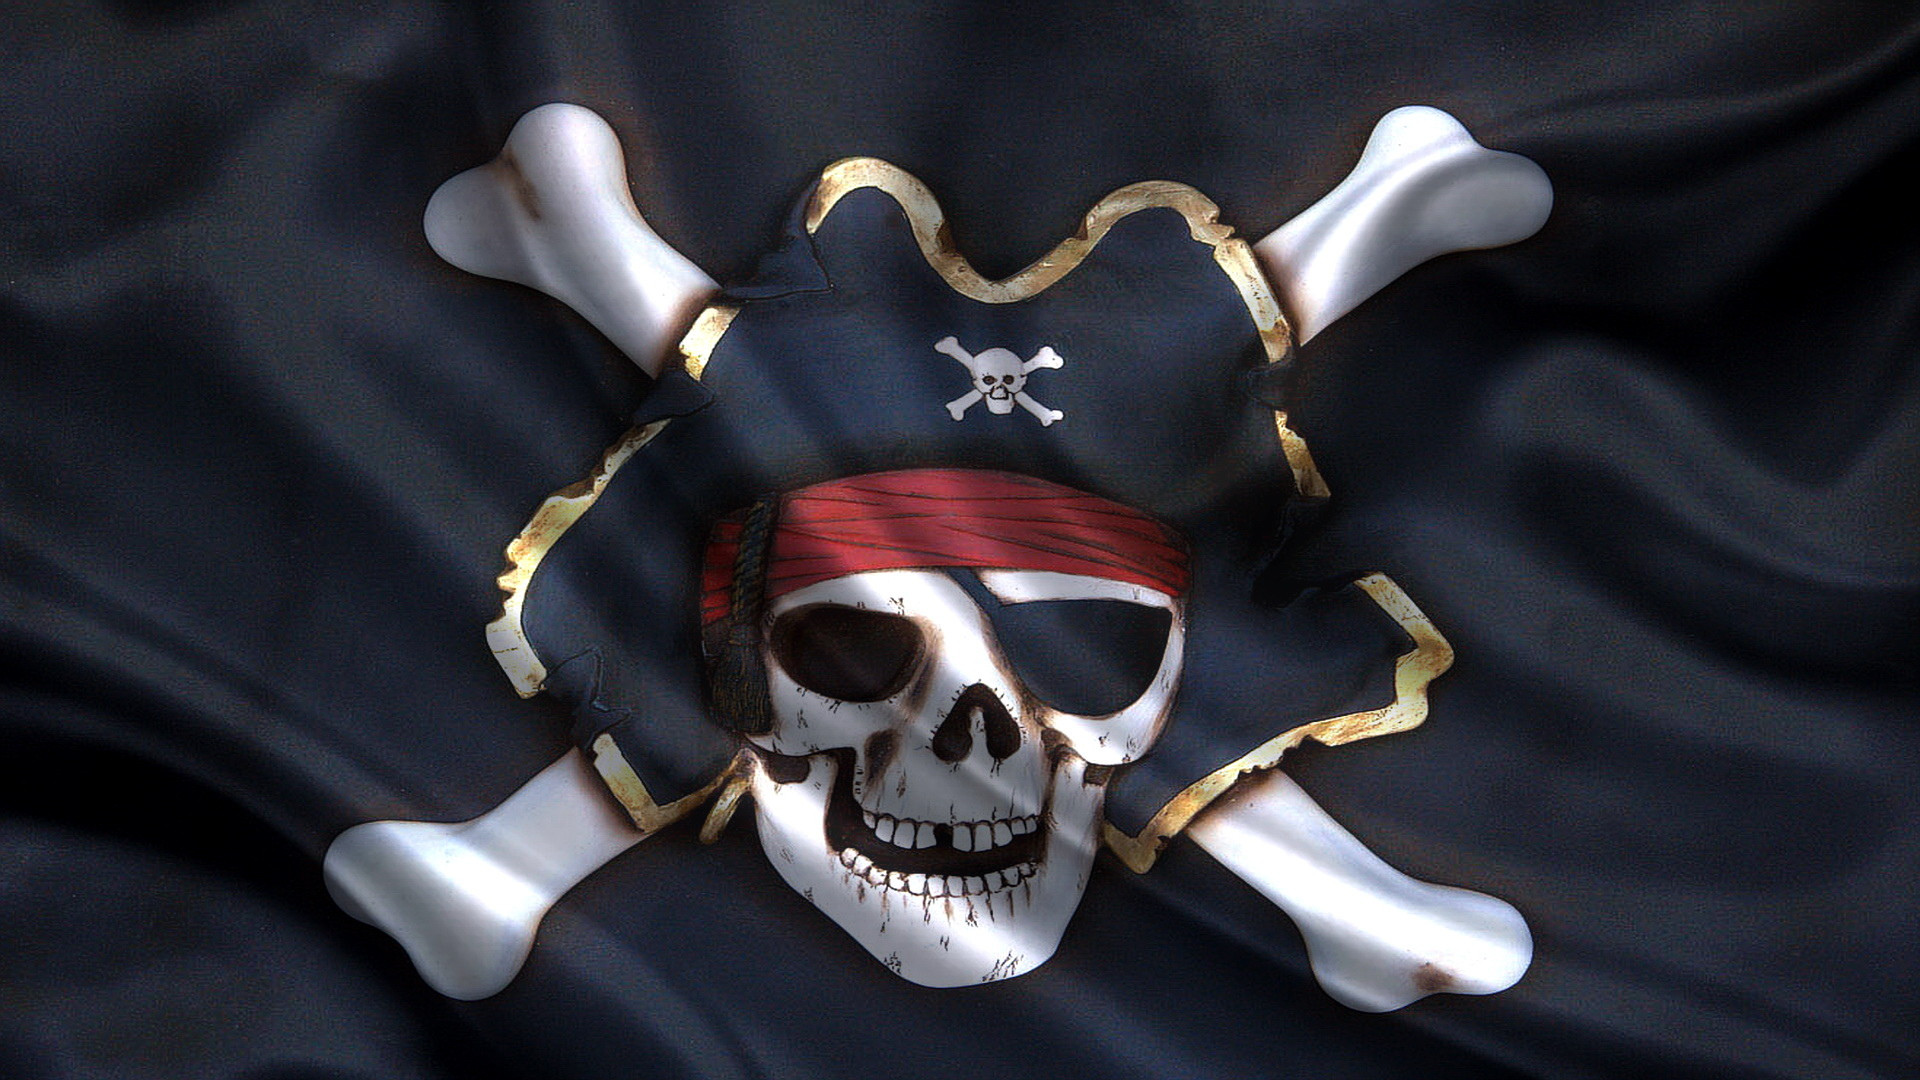 1920x1080 Awesome Pirate Flag Picture in HDQ